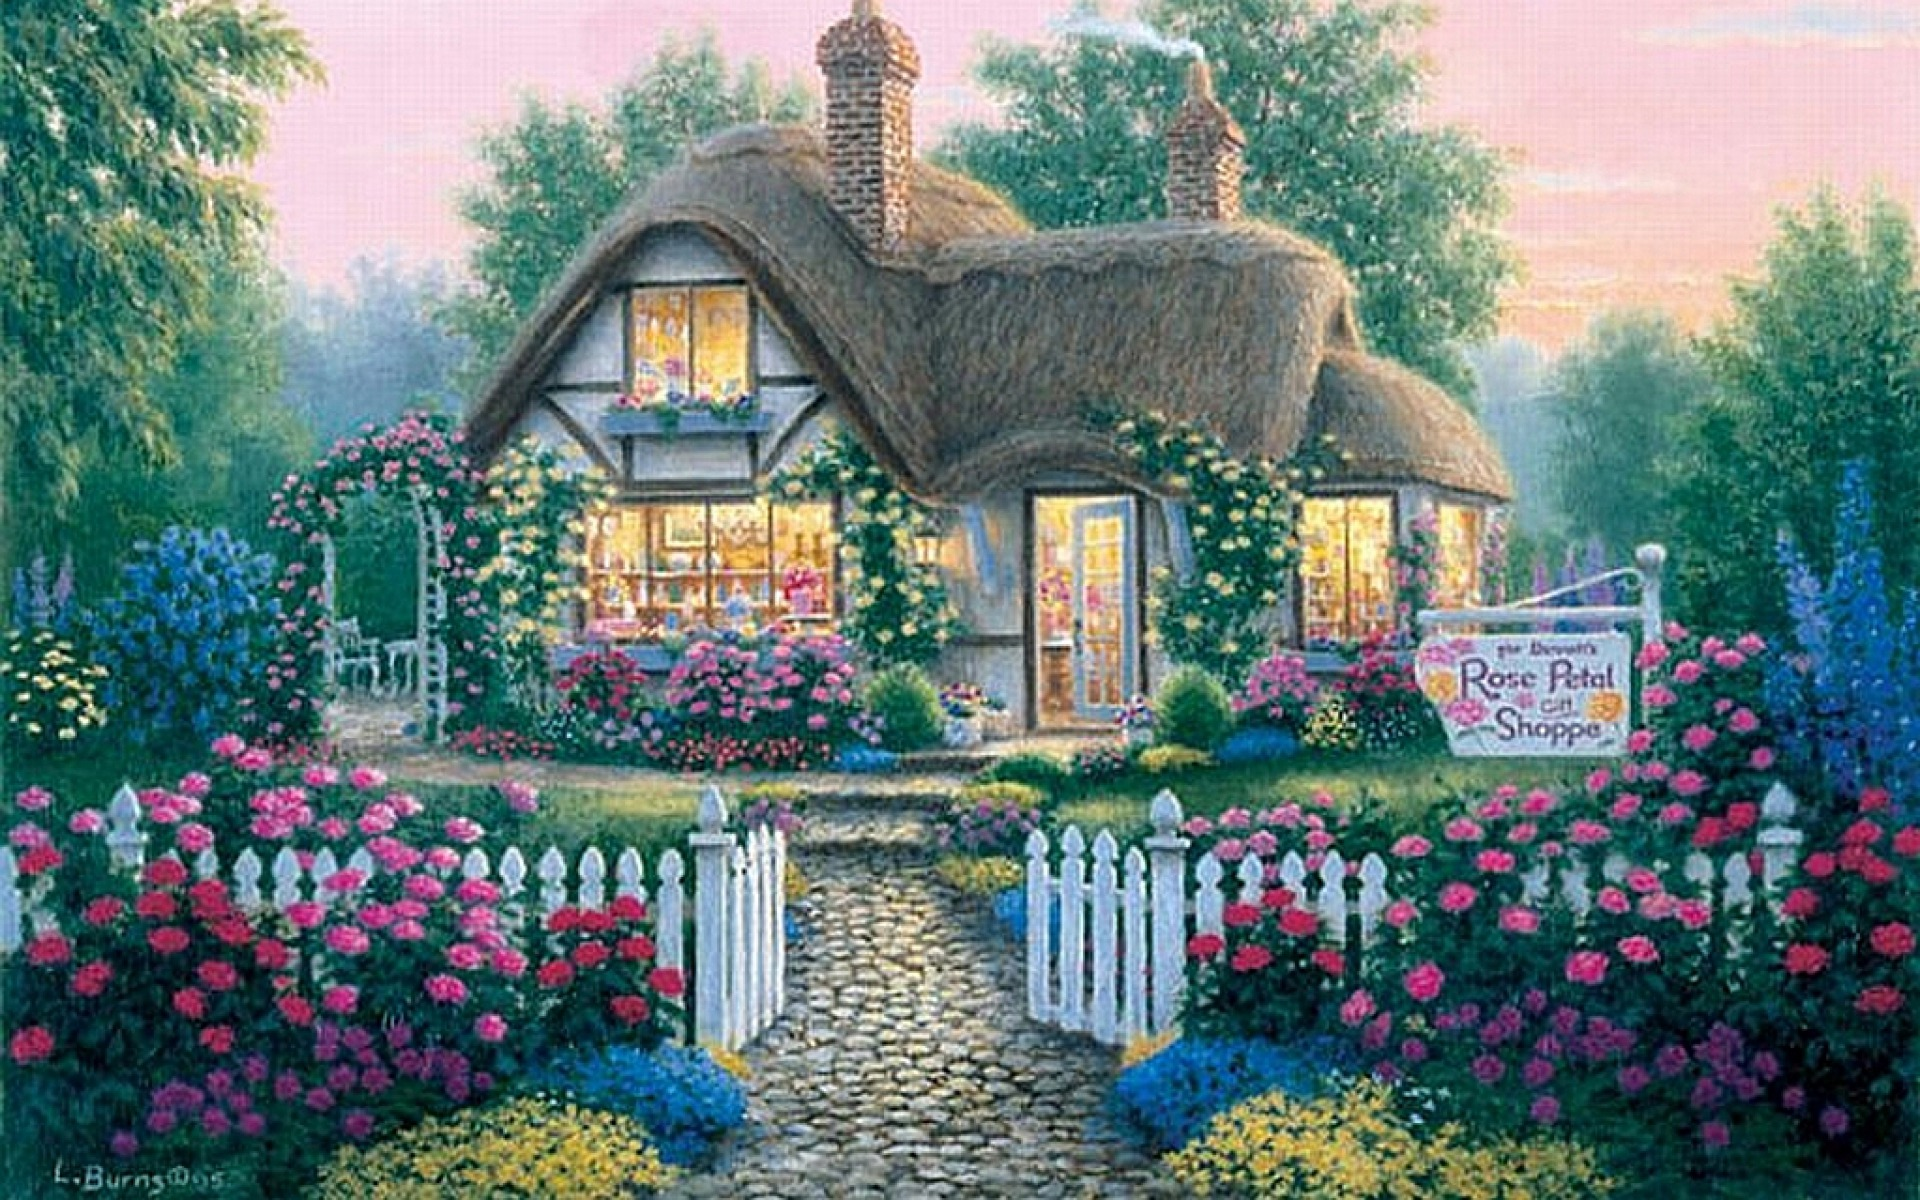 Rose Petal Cottage Wallpapers Rose Petal Cottage Stock HD Wallpapers Download Free Images Wallpaper [1000image.com]